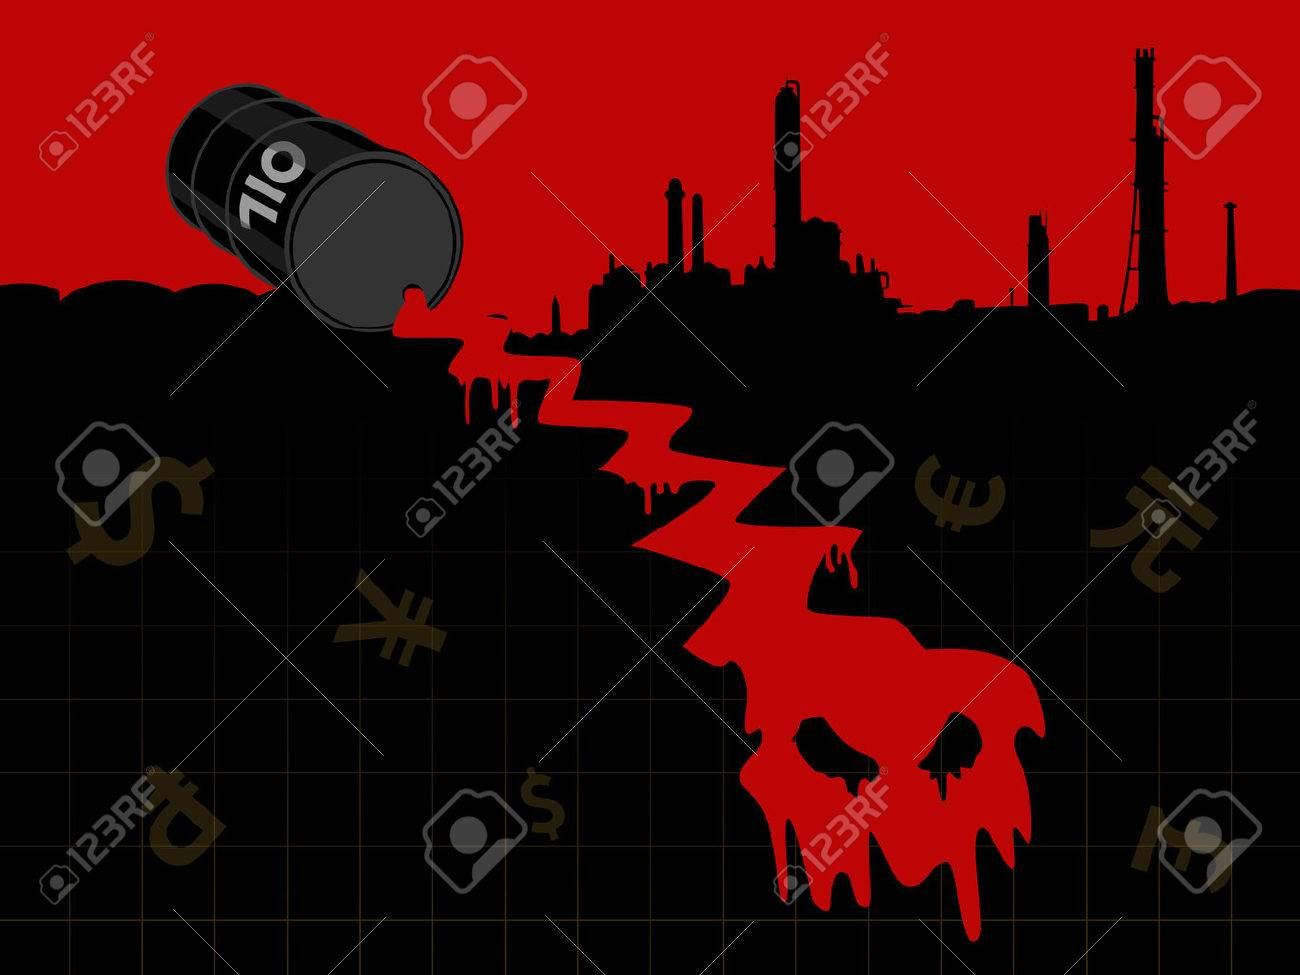 Crude Oil Price Fall Down Abstract Illustration With Red Leaked